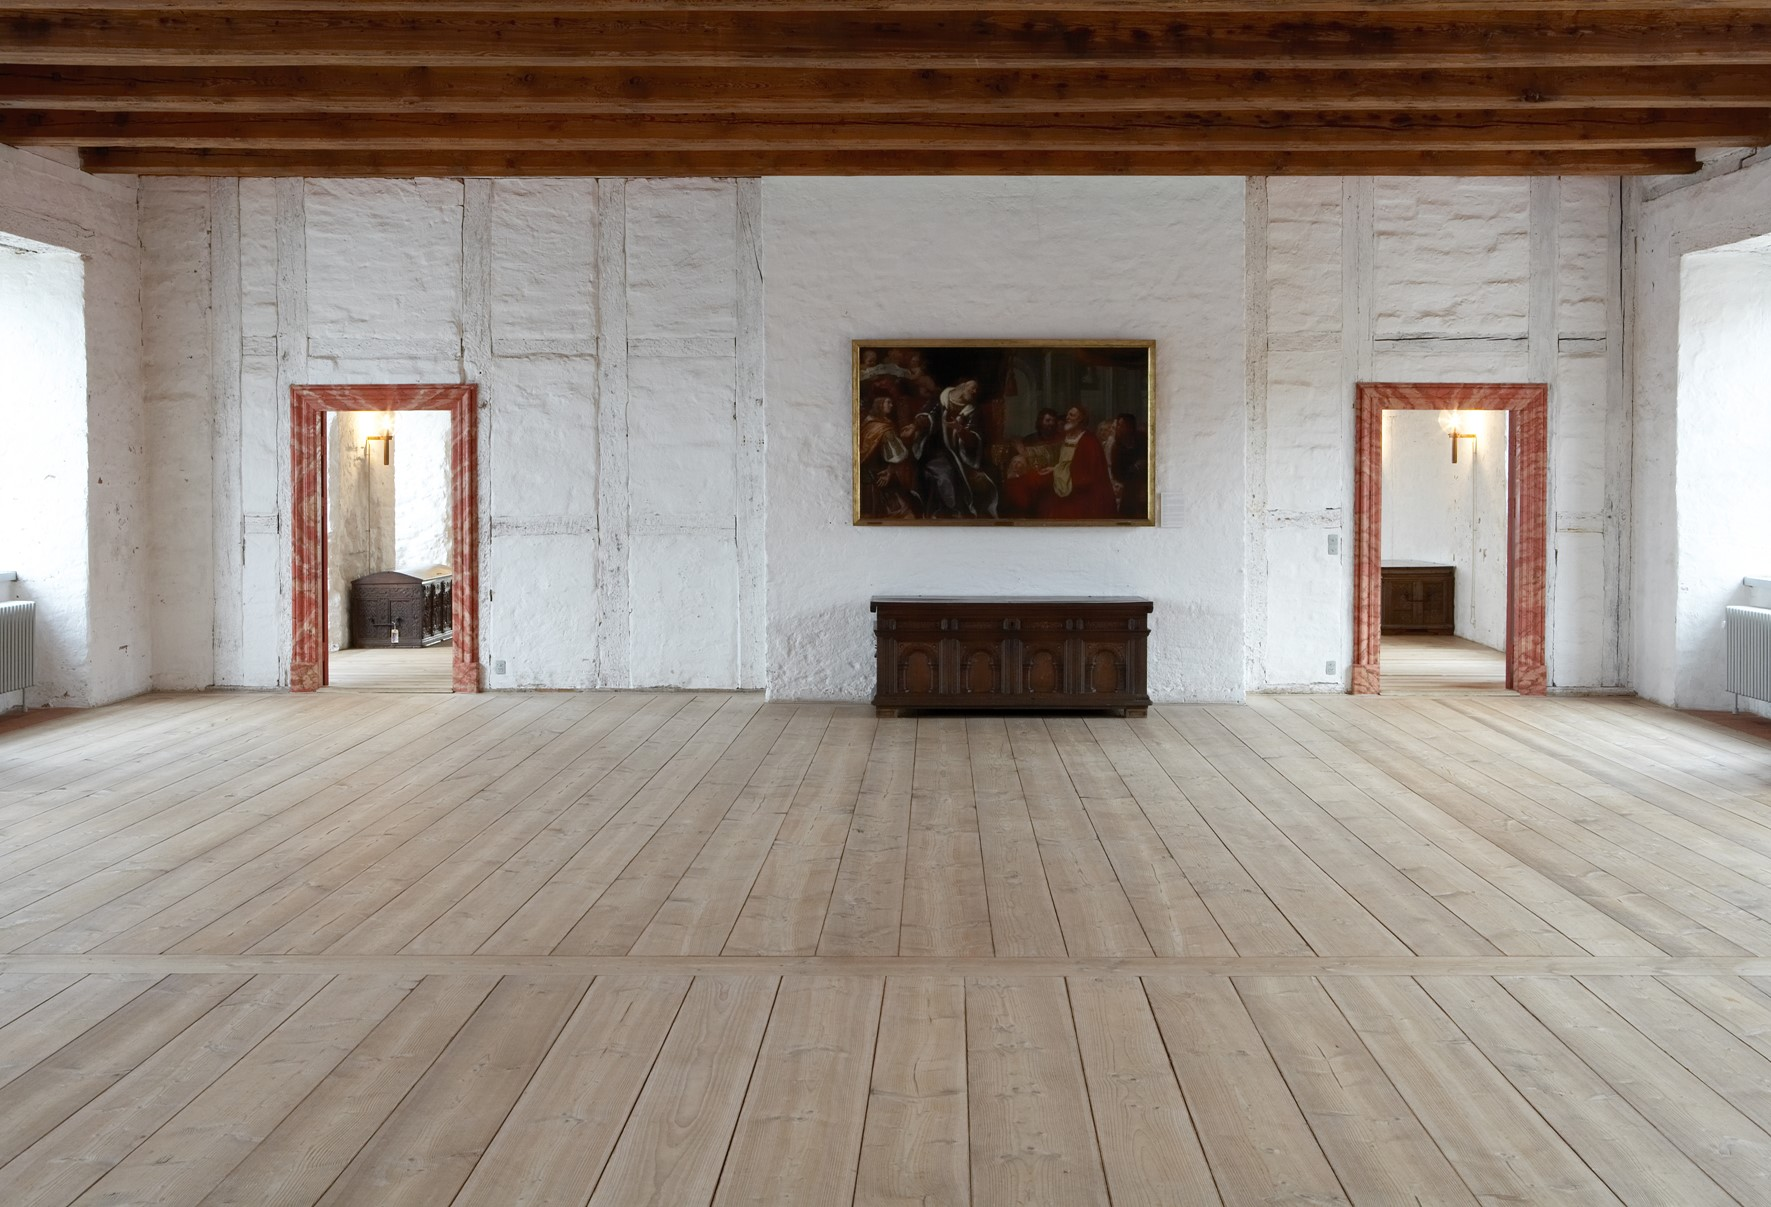 douglas fir floor untreated sonderborg castle living room dinesen 05.jpg